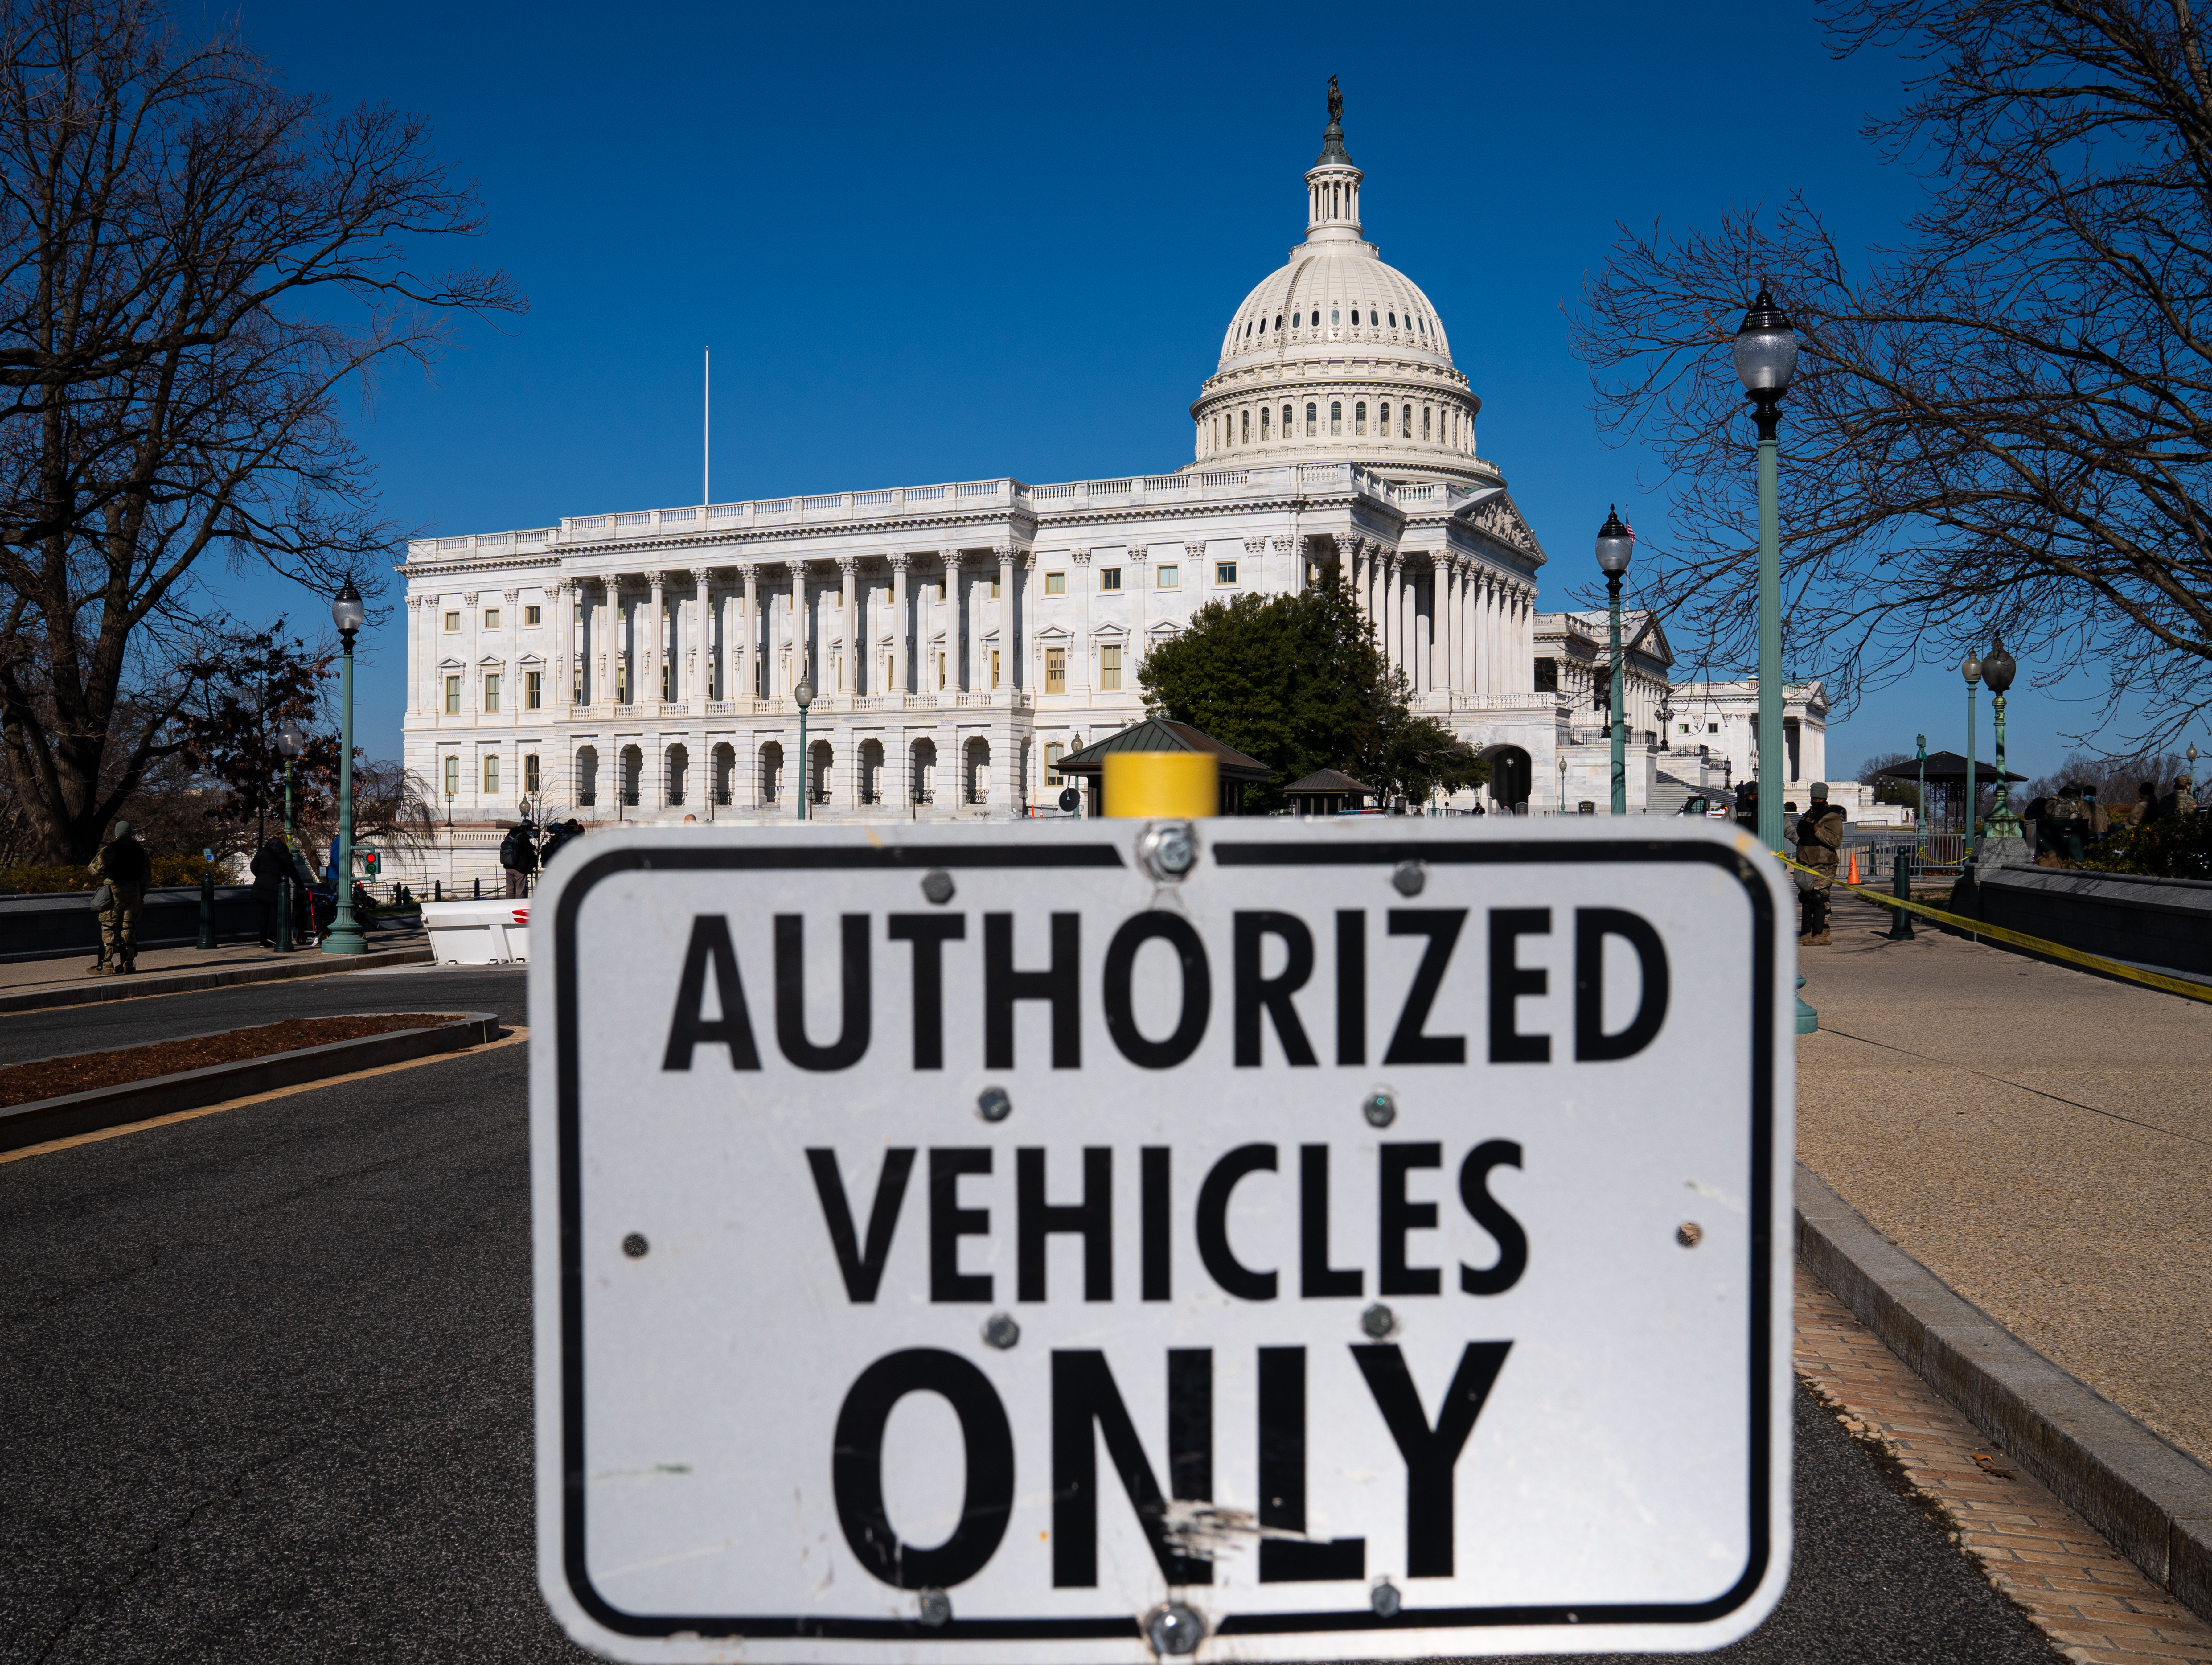 WASHINGTON, DC - JANUARY 07: A traffic sign stands at one of the front gates to the U.S. Capitol on January 7, 2021 in Washington, DC. A pro-Trump mob stormed and desecrated the building the day before as Congress held a joint session to ratify President-elect Joe Biden's 306-232 Electoral College win over President Donald Trump. (Photo by Robert Nickelsberg/Getty Images)